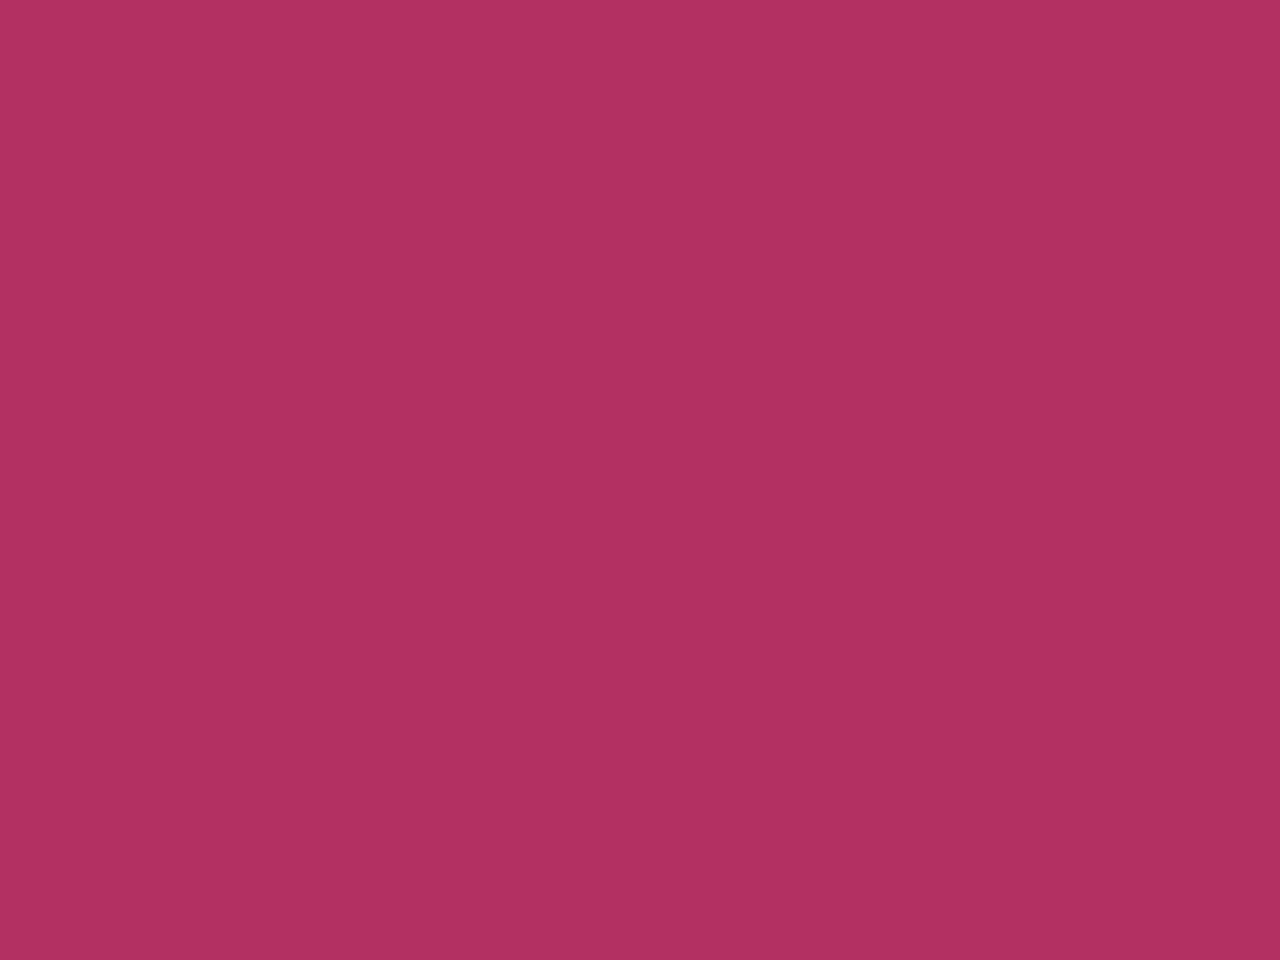 1280x960 Maroon X11 Gui Solid Color Background